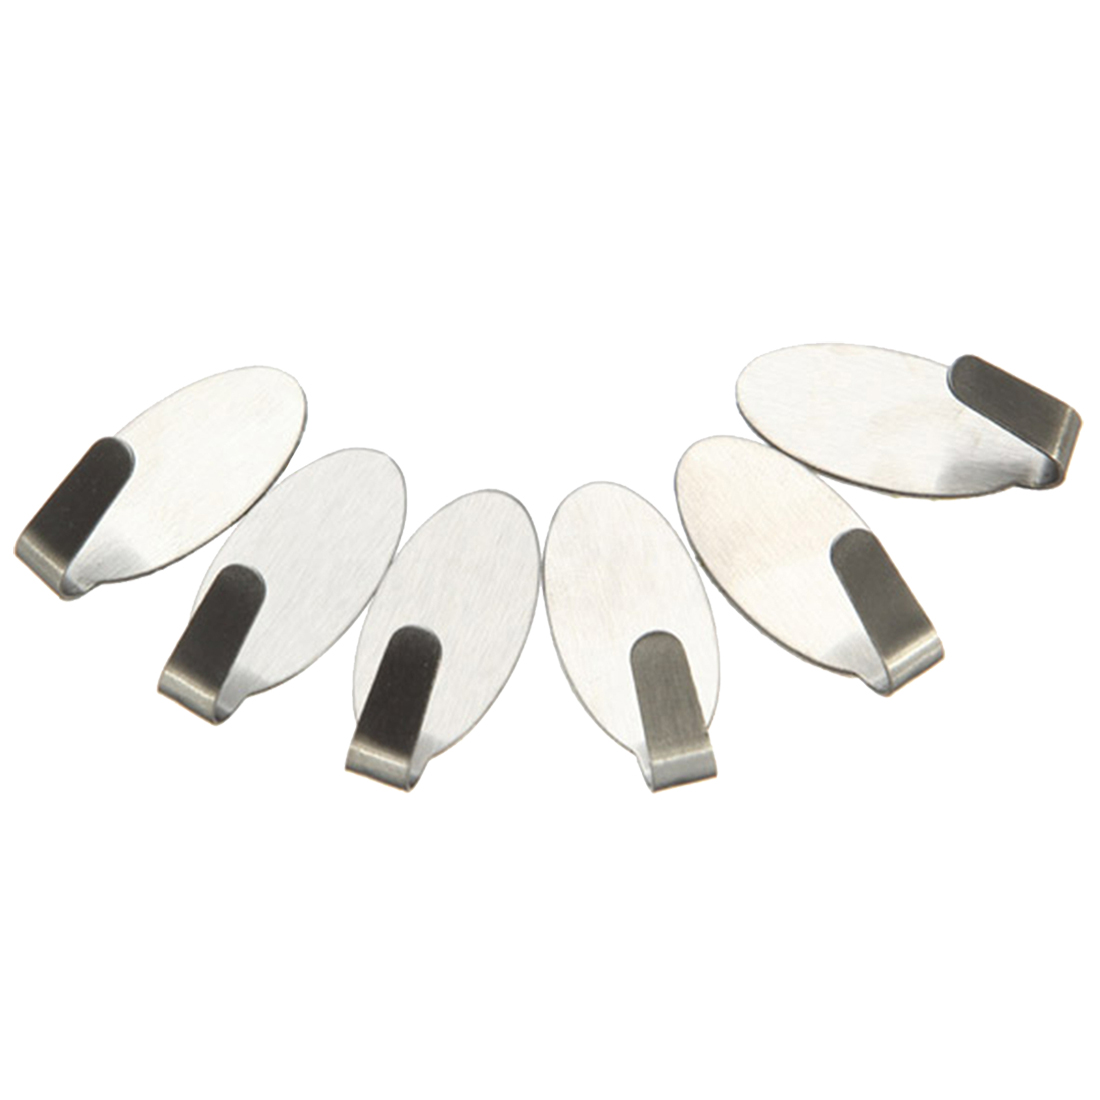 6 Stainless Steel Self Adhesive Stick Sticky On Door Wall Peg Hanger Holder Hook Pattern: Oval